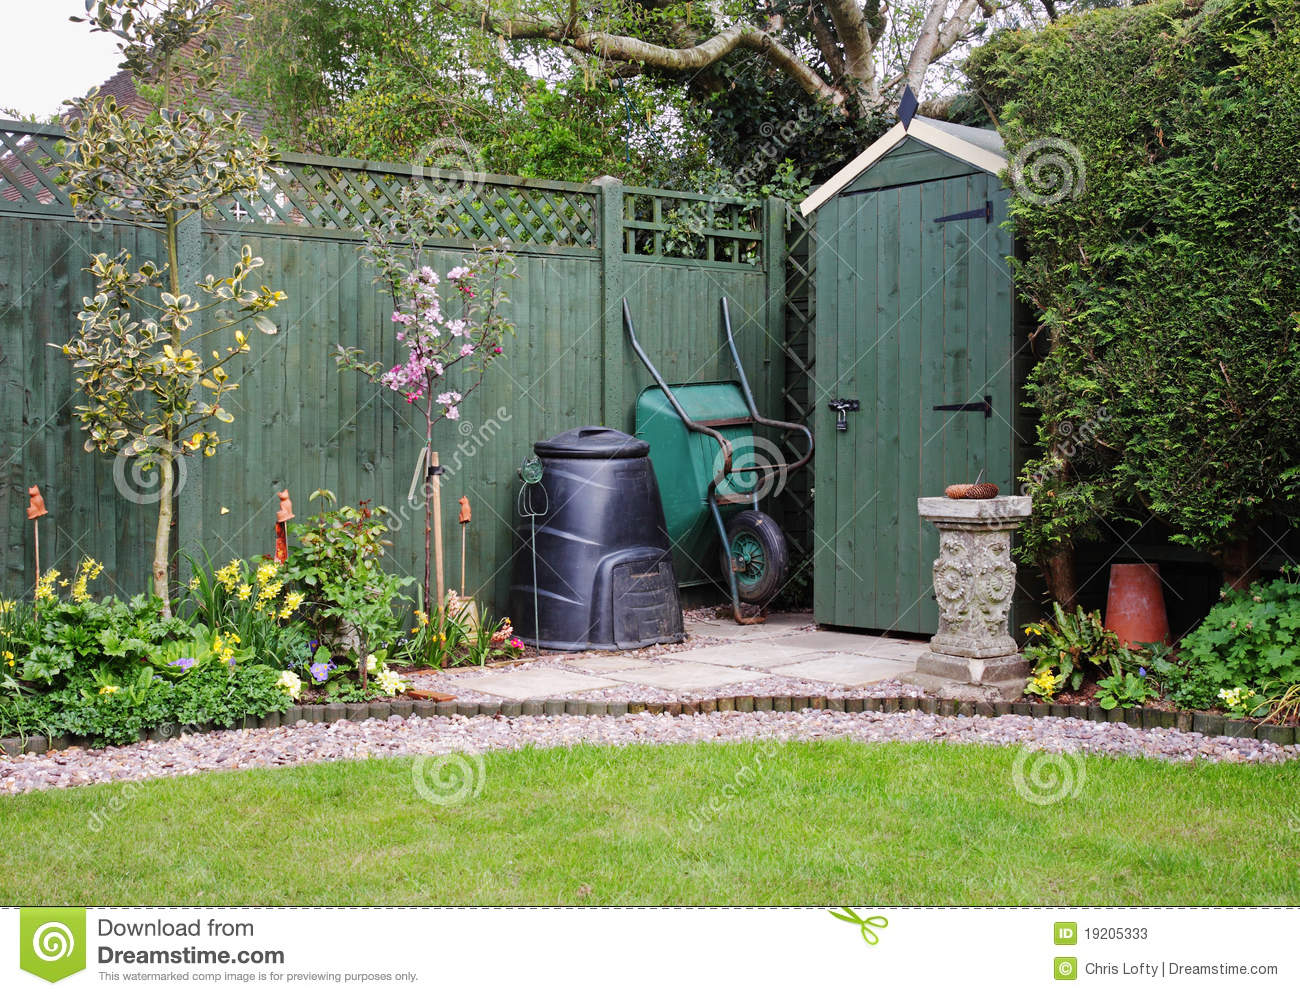 Garden Compost Bin Royalty Free Stock Photo Image 31462735